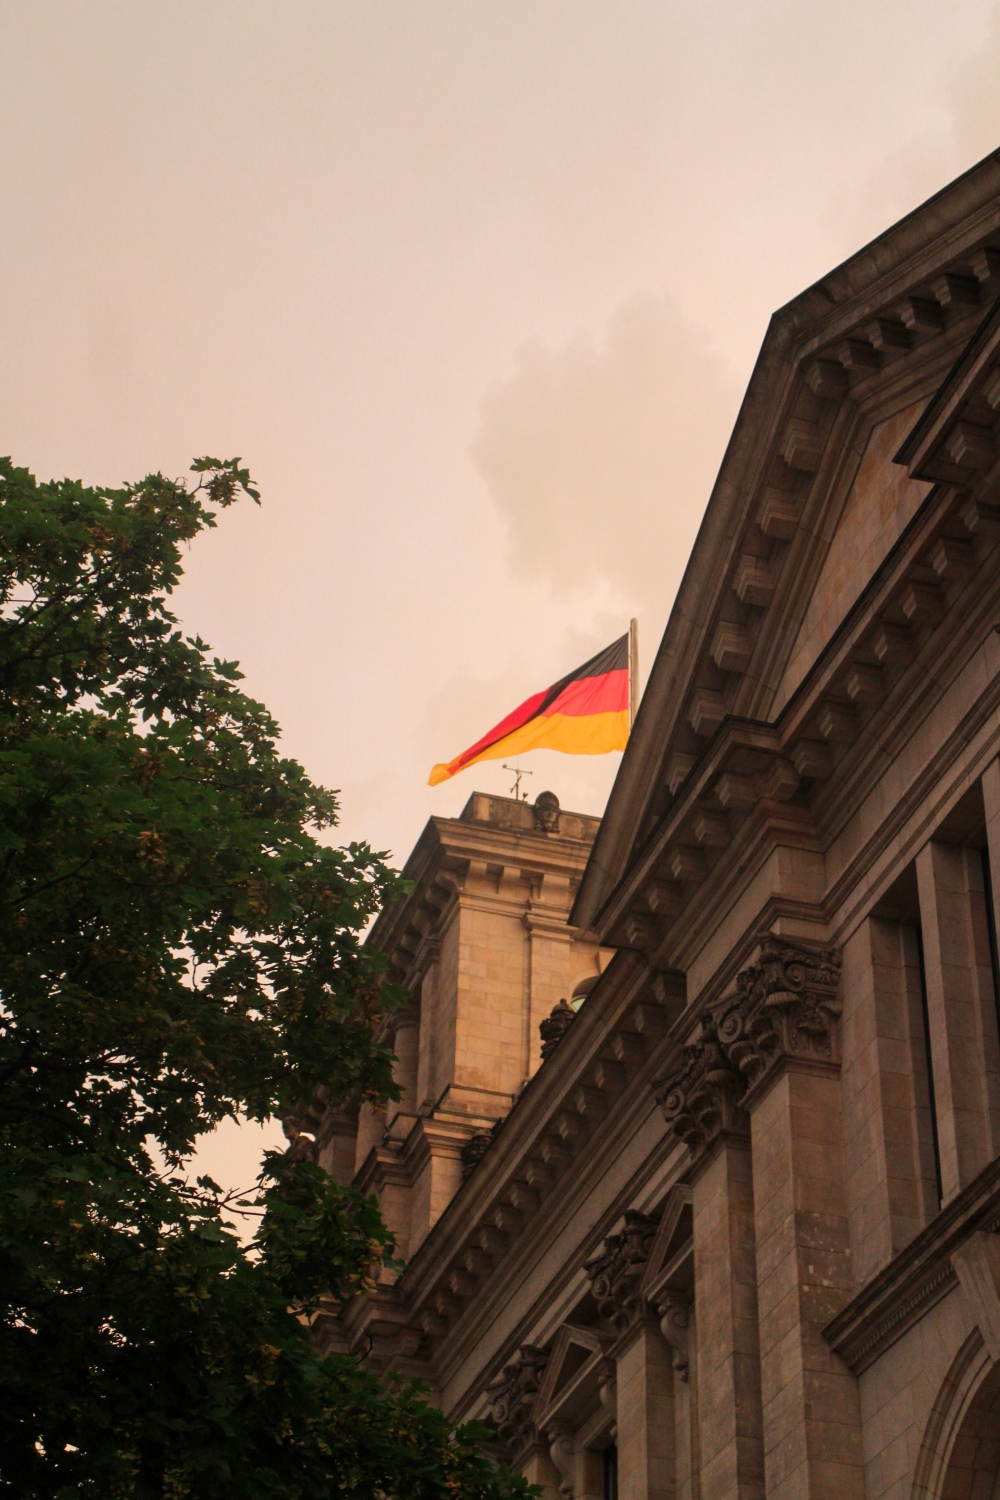 The Reichstag Building in Berlin with a German flag on top set against a pink sunset sky